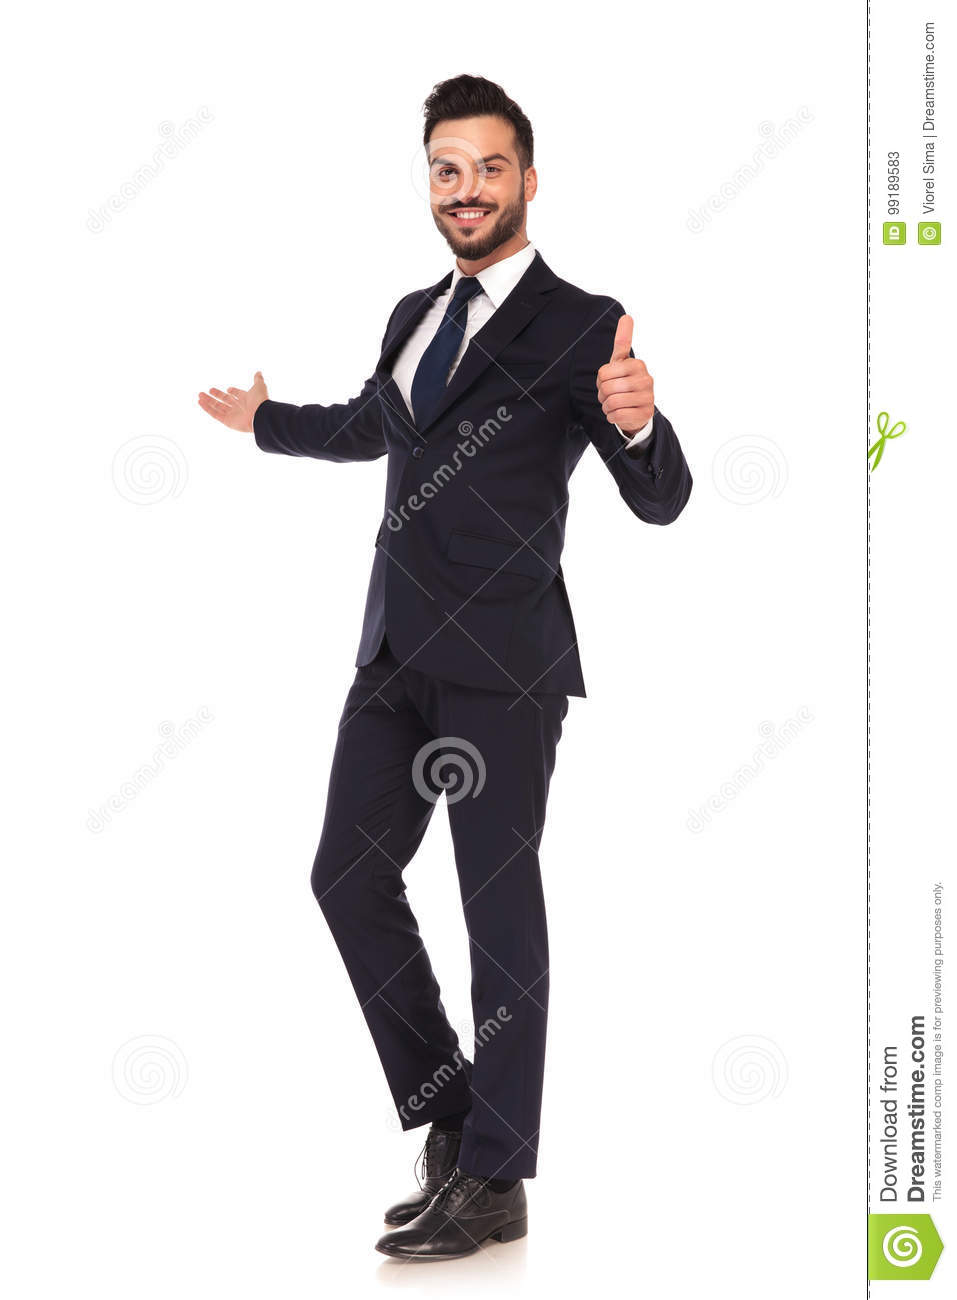 Young business man presenting and making the ok hand sign